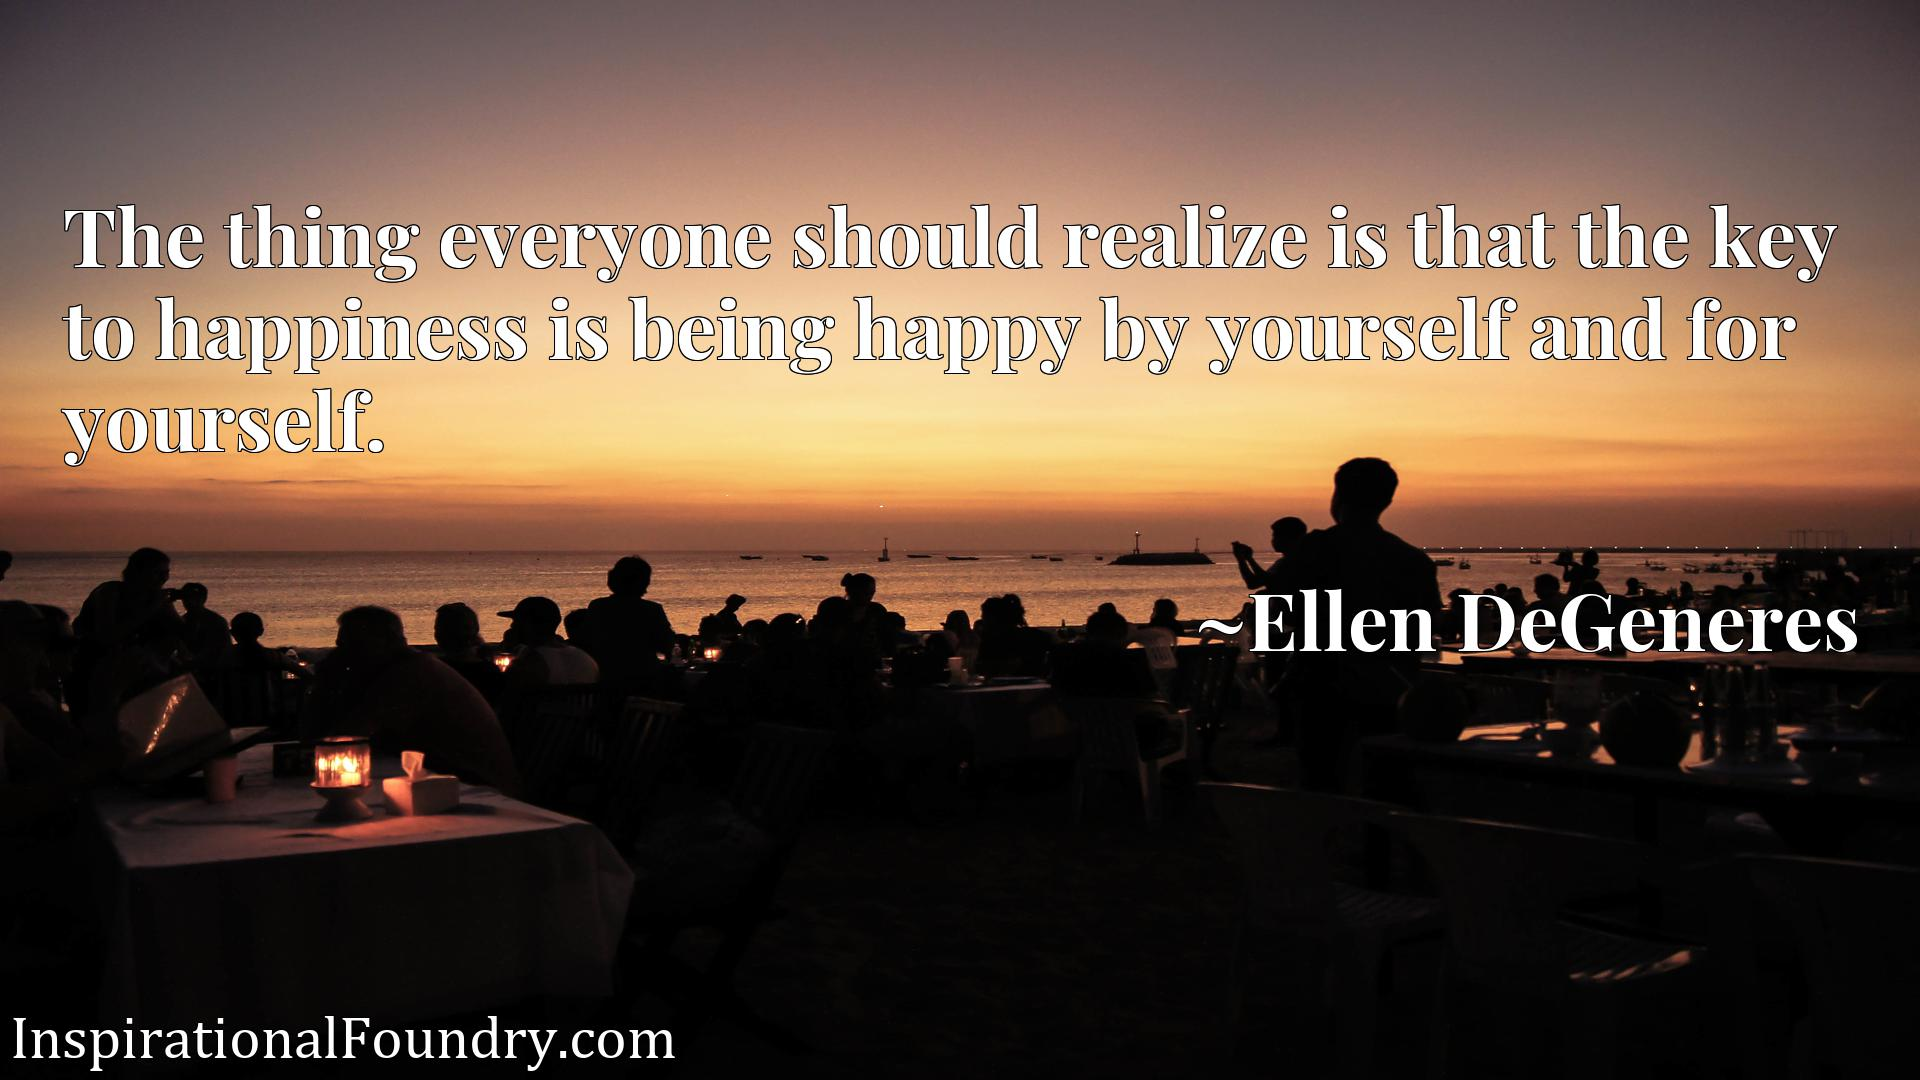 The thing everyone should realize is that the key to happiness is being happy by yourself and for yourself.